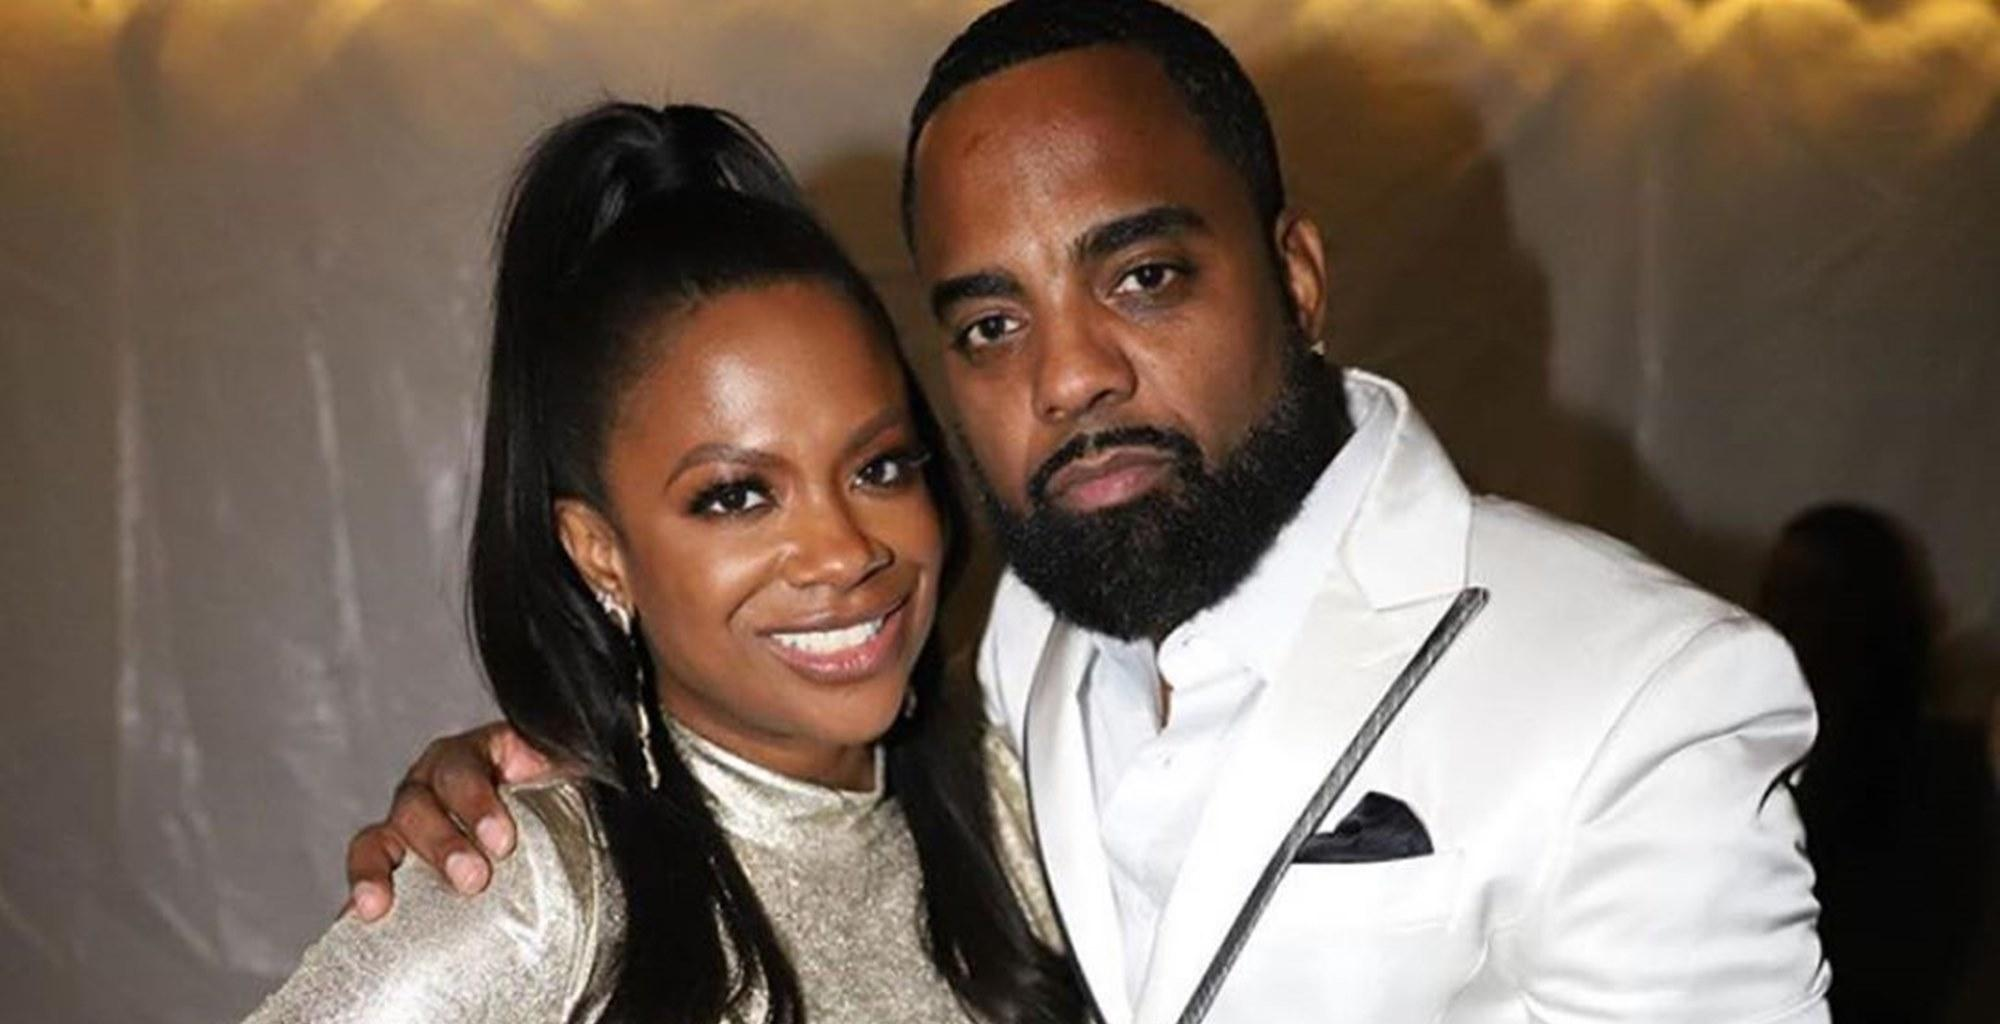 Todd Tucker Shares A Video With His Family - Check Out Kandi Burruss, Ace Wells Tucker, And Baby Blaze!